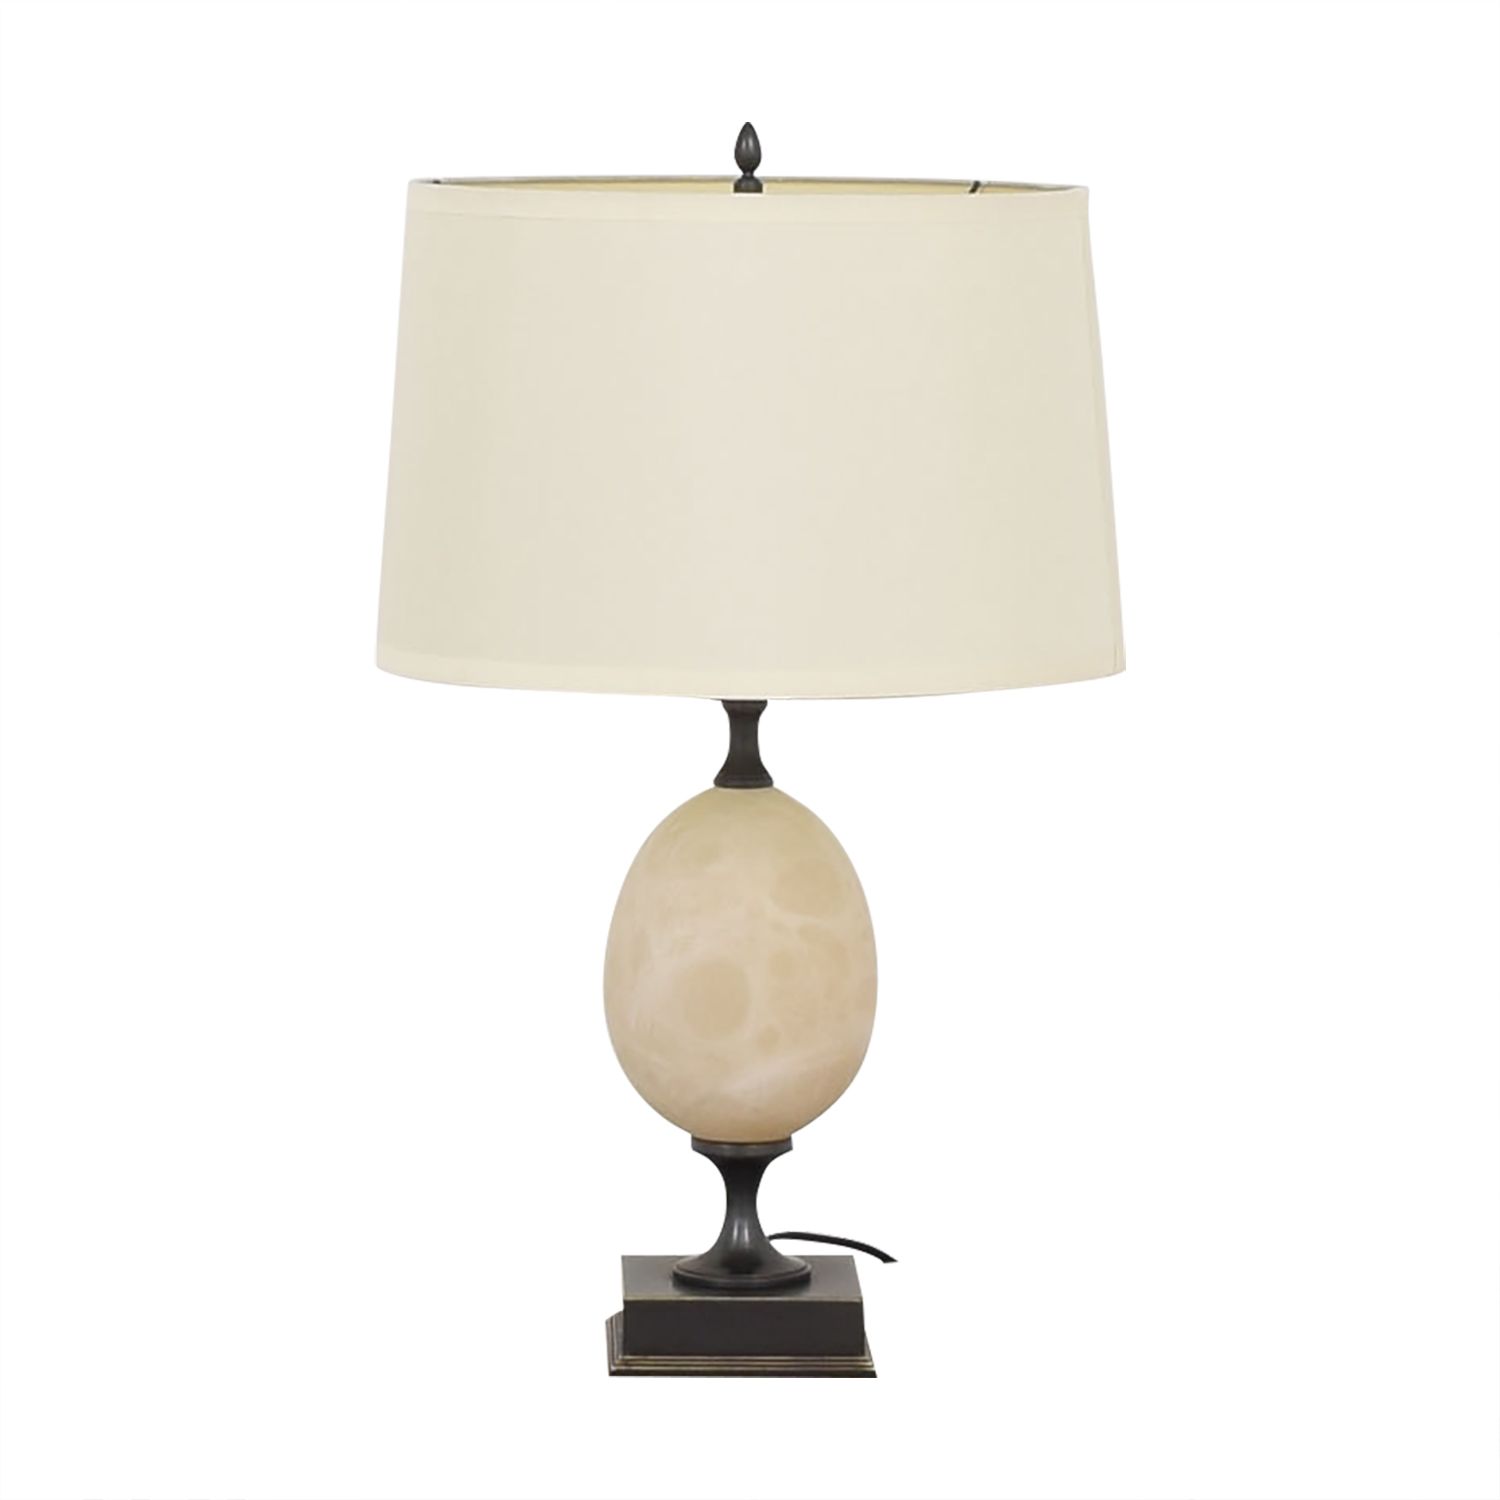 Restoration Hardware Restoration Hardware Table Lamp nyc